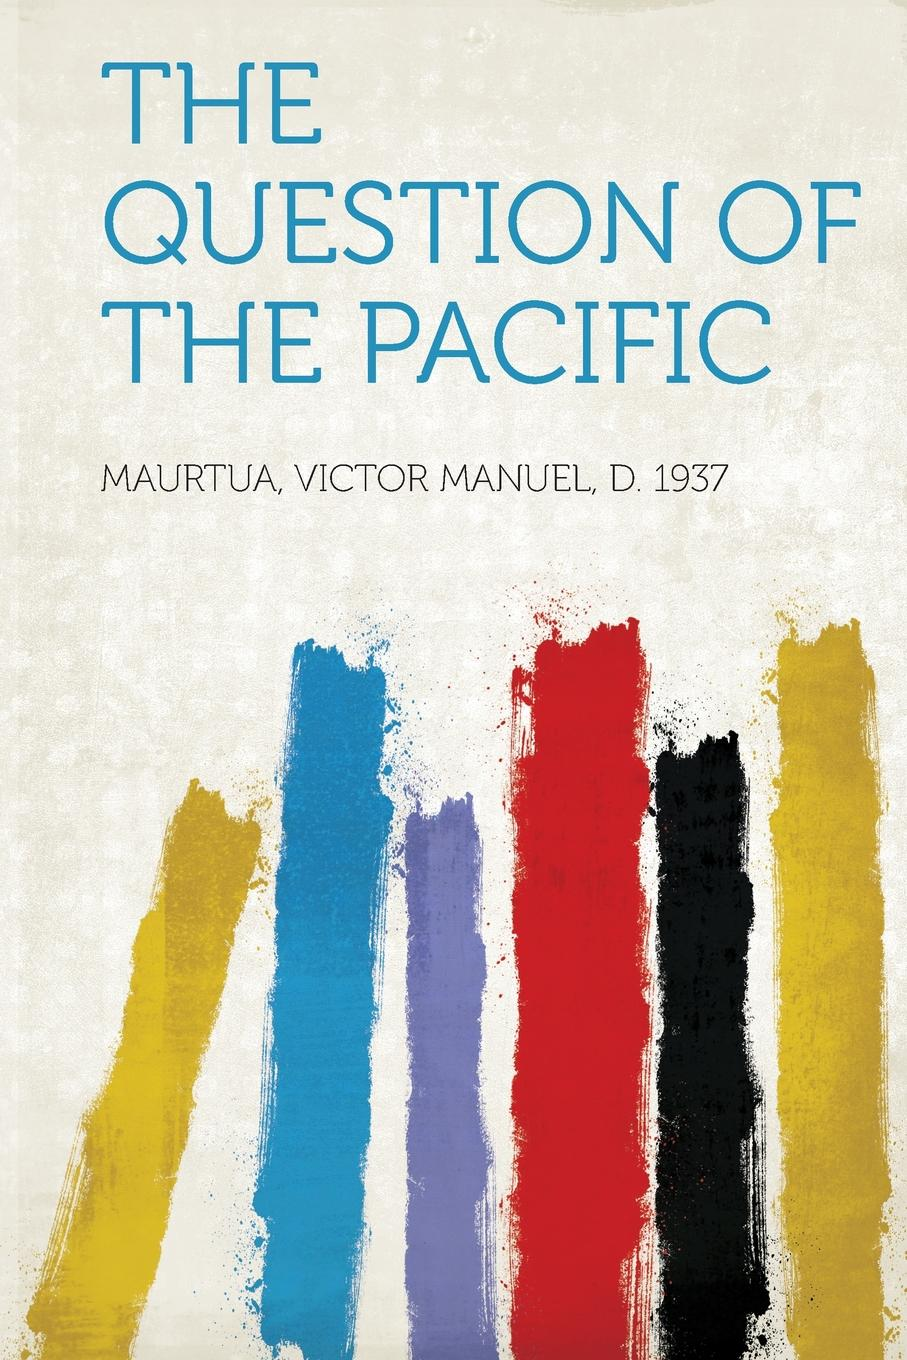 Maurtua Victor Manuel d. 1937 The Question of the Pacific